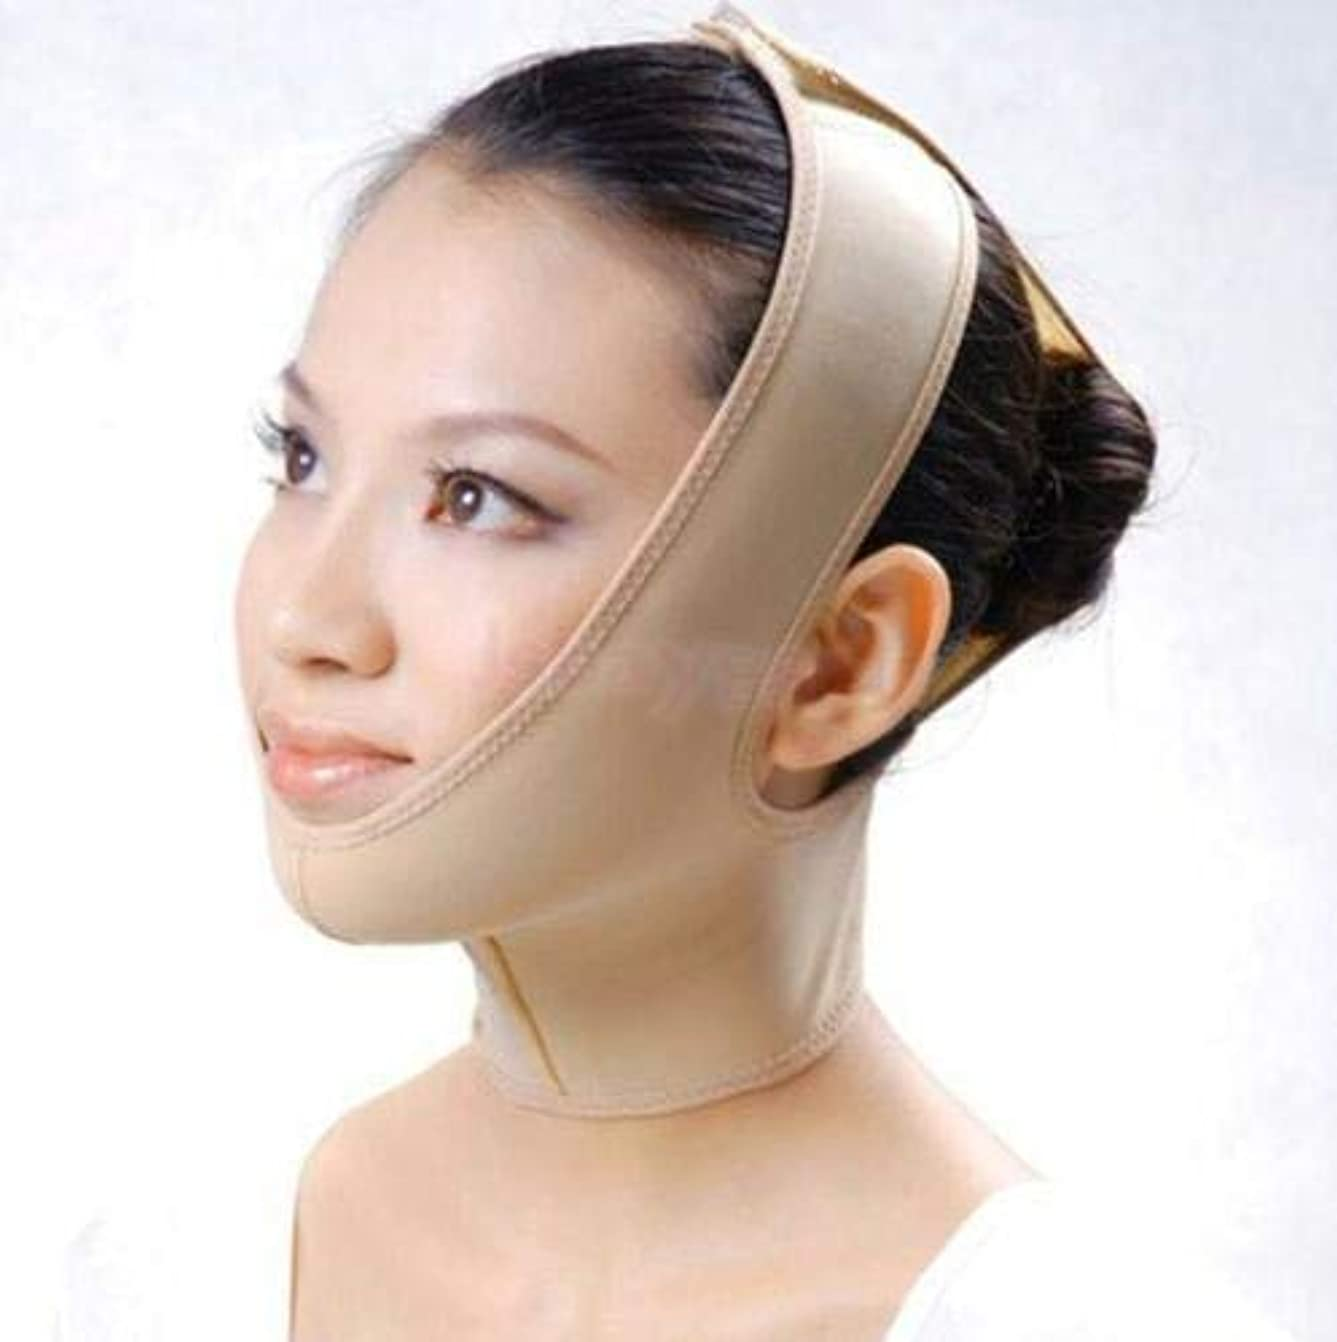 バルコニー縞模様の東ティモールFidgetGear ANTI WRINKLE V FACE CHIN CHEEK LIFT UP SLIMMING THIN BELT MASK STRAP BAND S-XXL Small